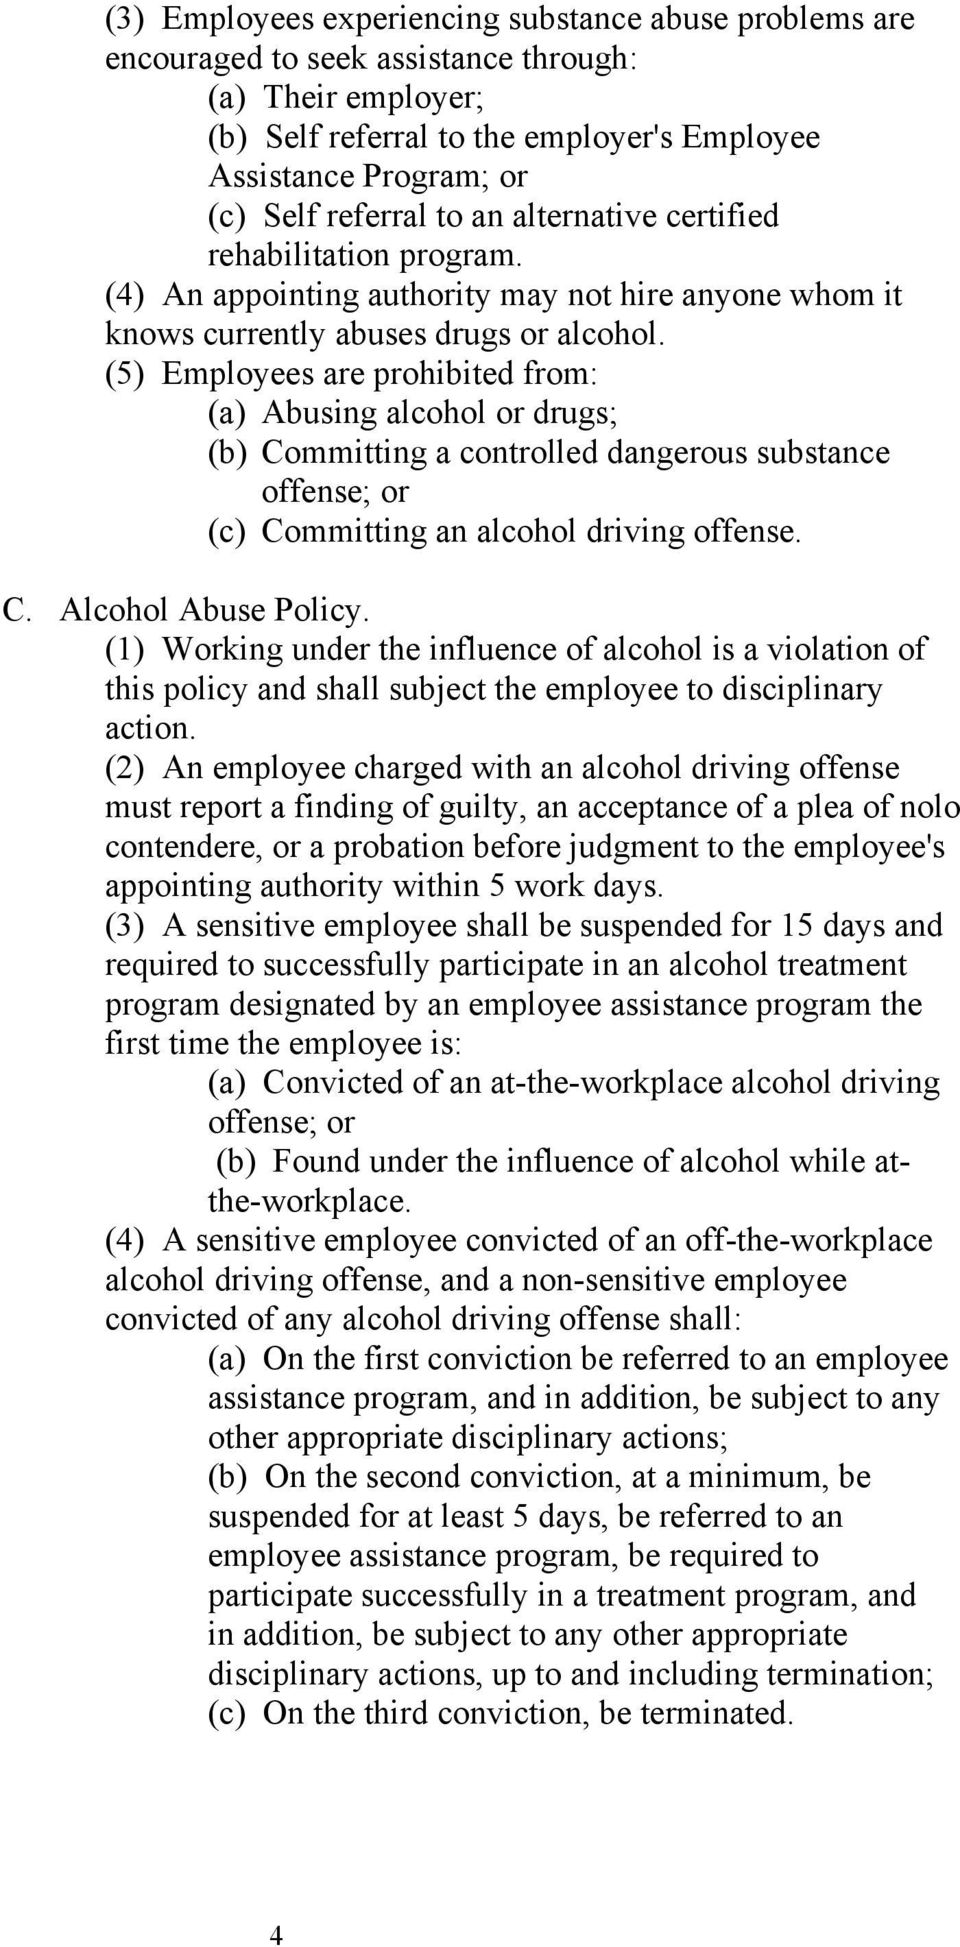 (5) Employees are prohibited from: (a) Abusing alcohol or drugs; (b) Committing a controlled dangerous substance offense; or (c) Committing an alcohol driving offense. C. Alcohol Abuse Policy.